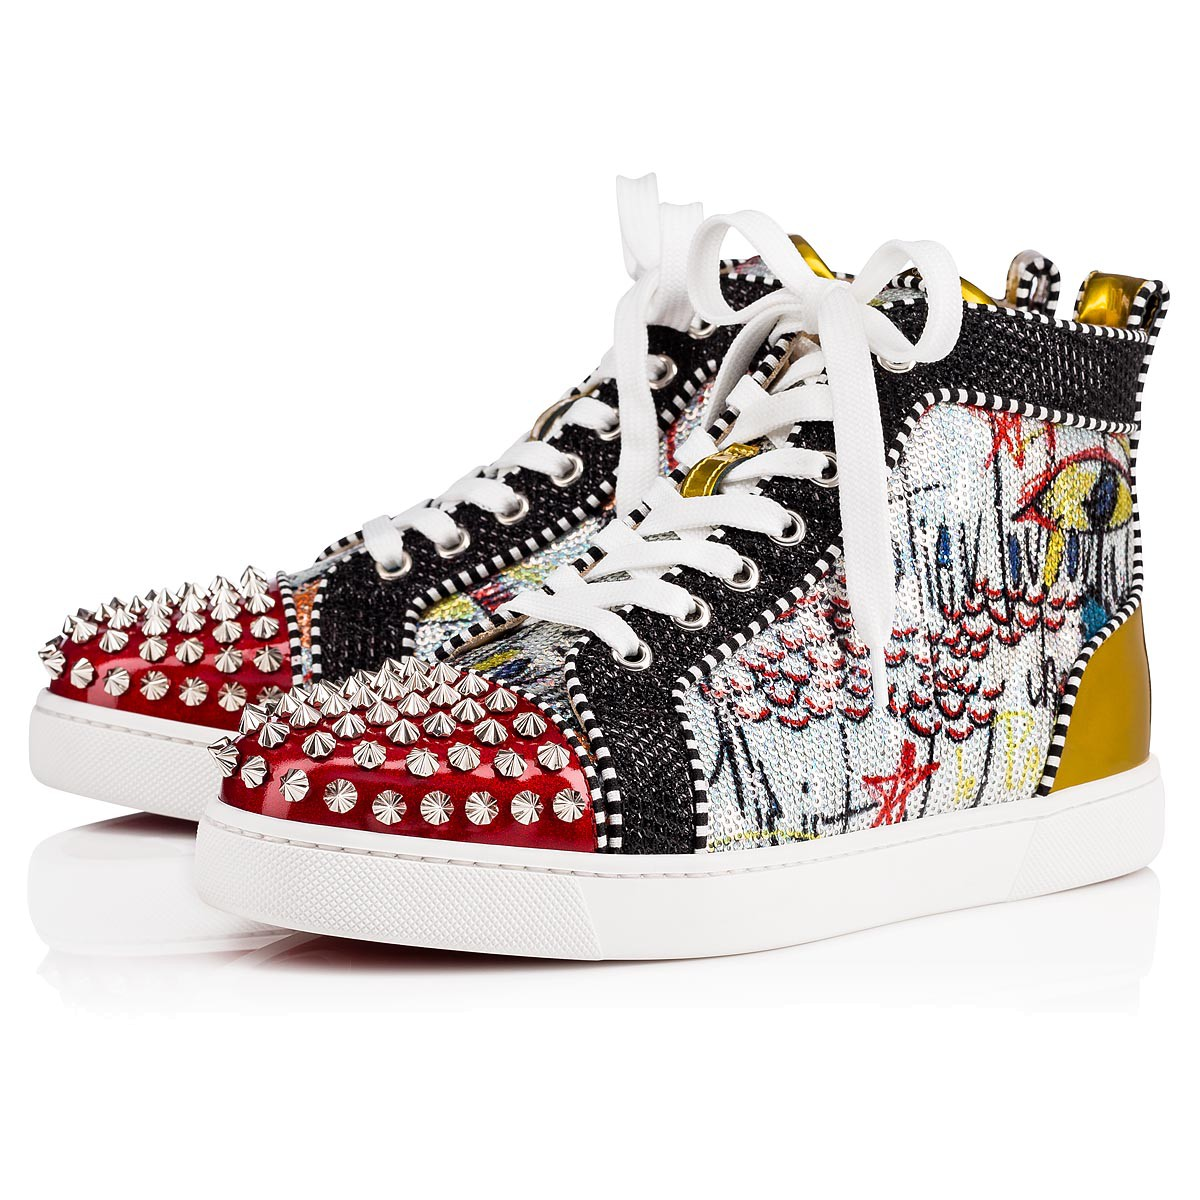 red bottom shoes for men - Christian Louboutin High Top Silver Spikes Men  Shoes Lou Spikes Woman Flat - red bottoms for men - red bottom sneakers US   280- ... f757c2f8d